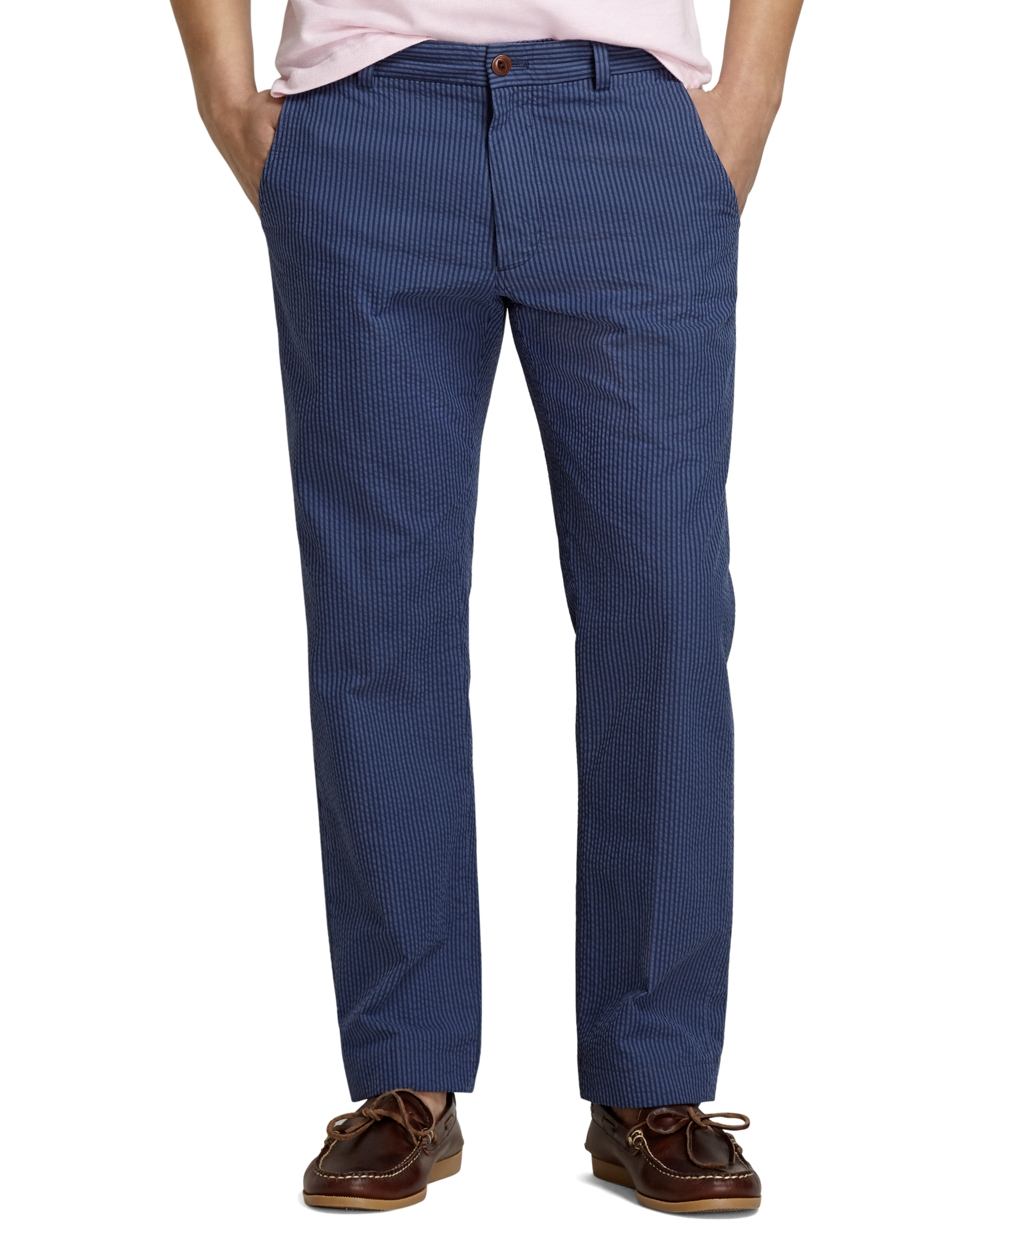 Find seersucker pants for men at ShopStyle. Shop the latest collection of seersucker pants for men from the most popular stores - all in one place.